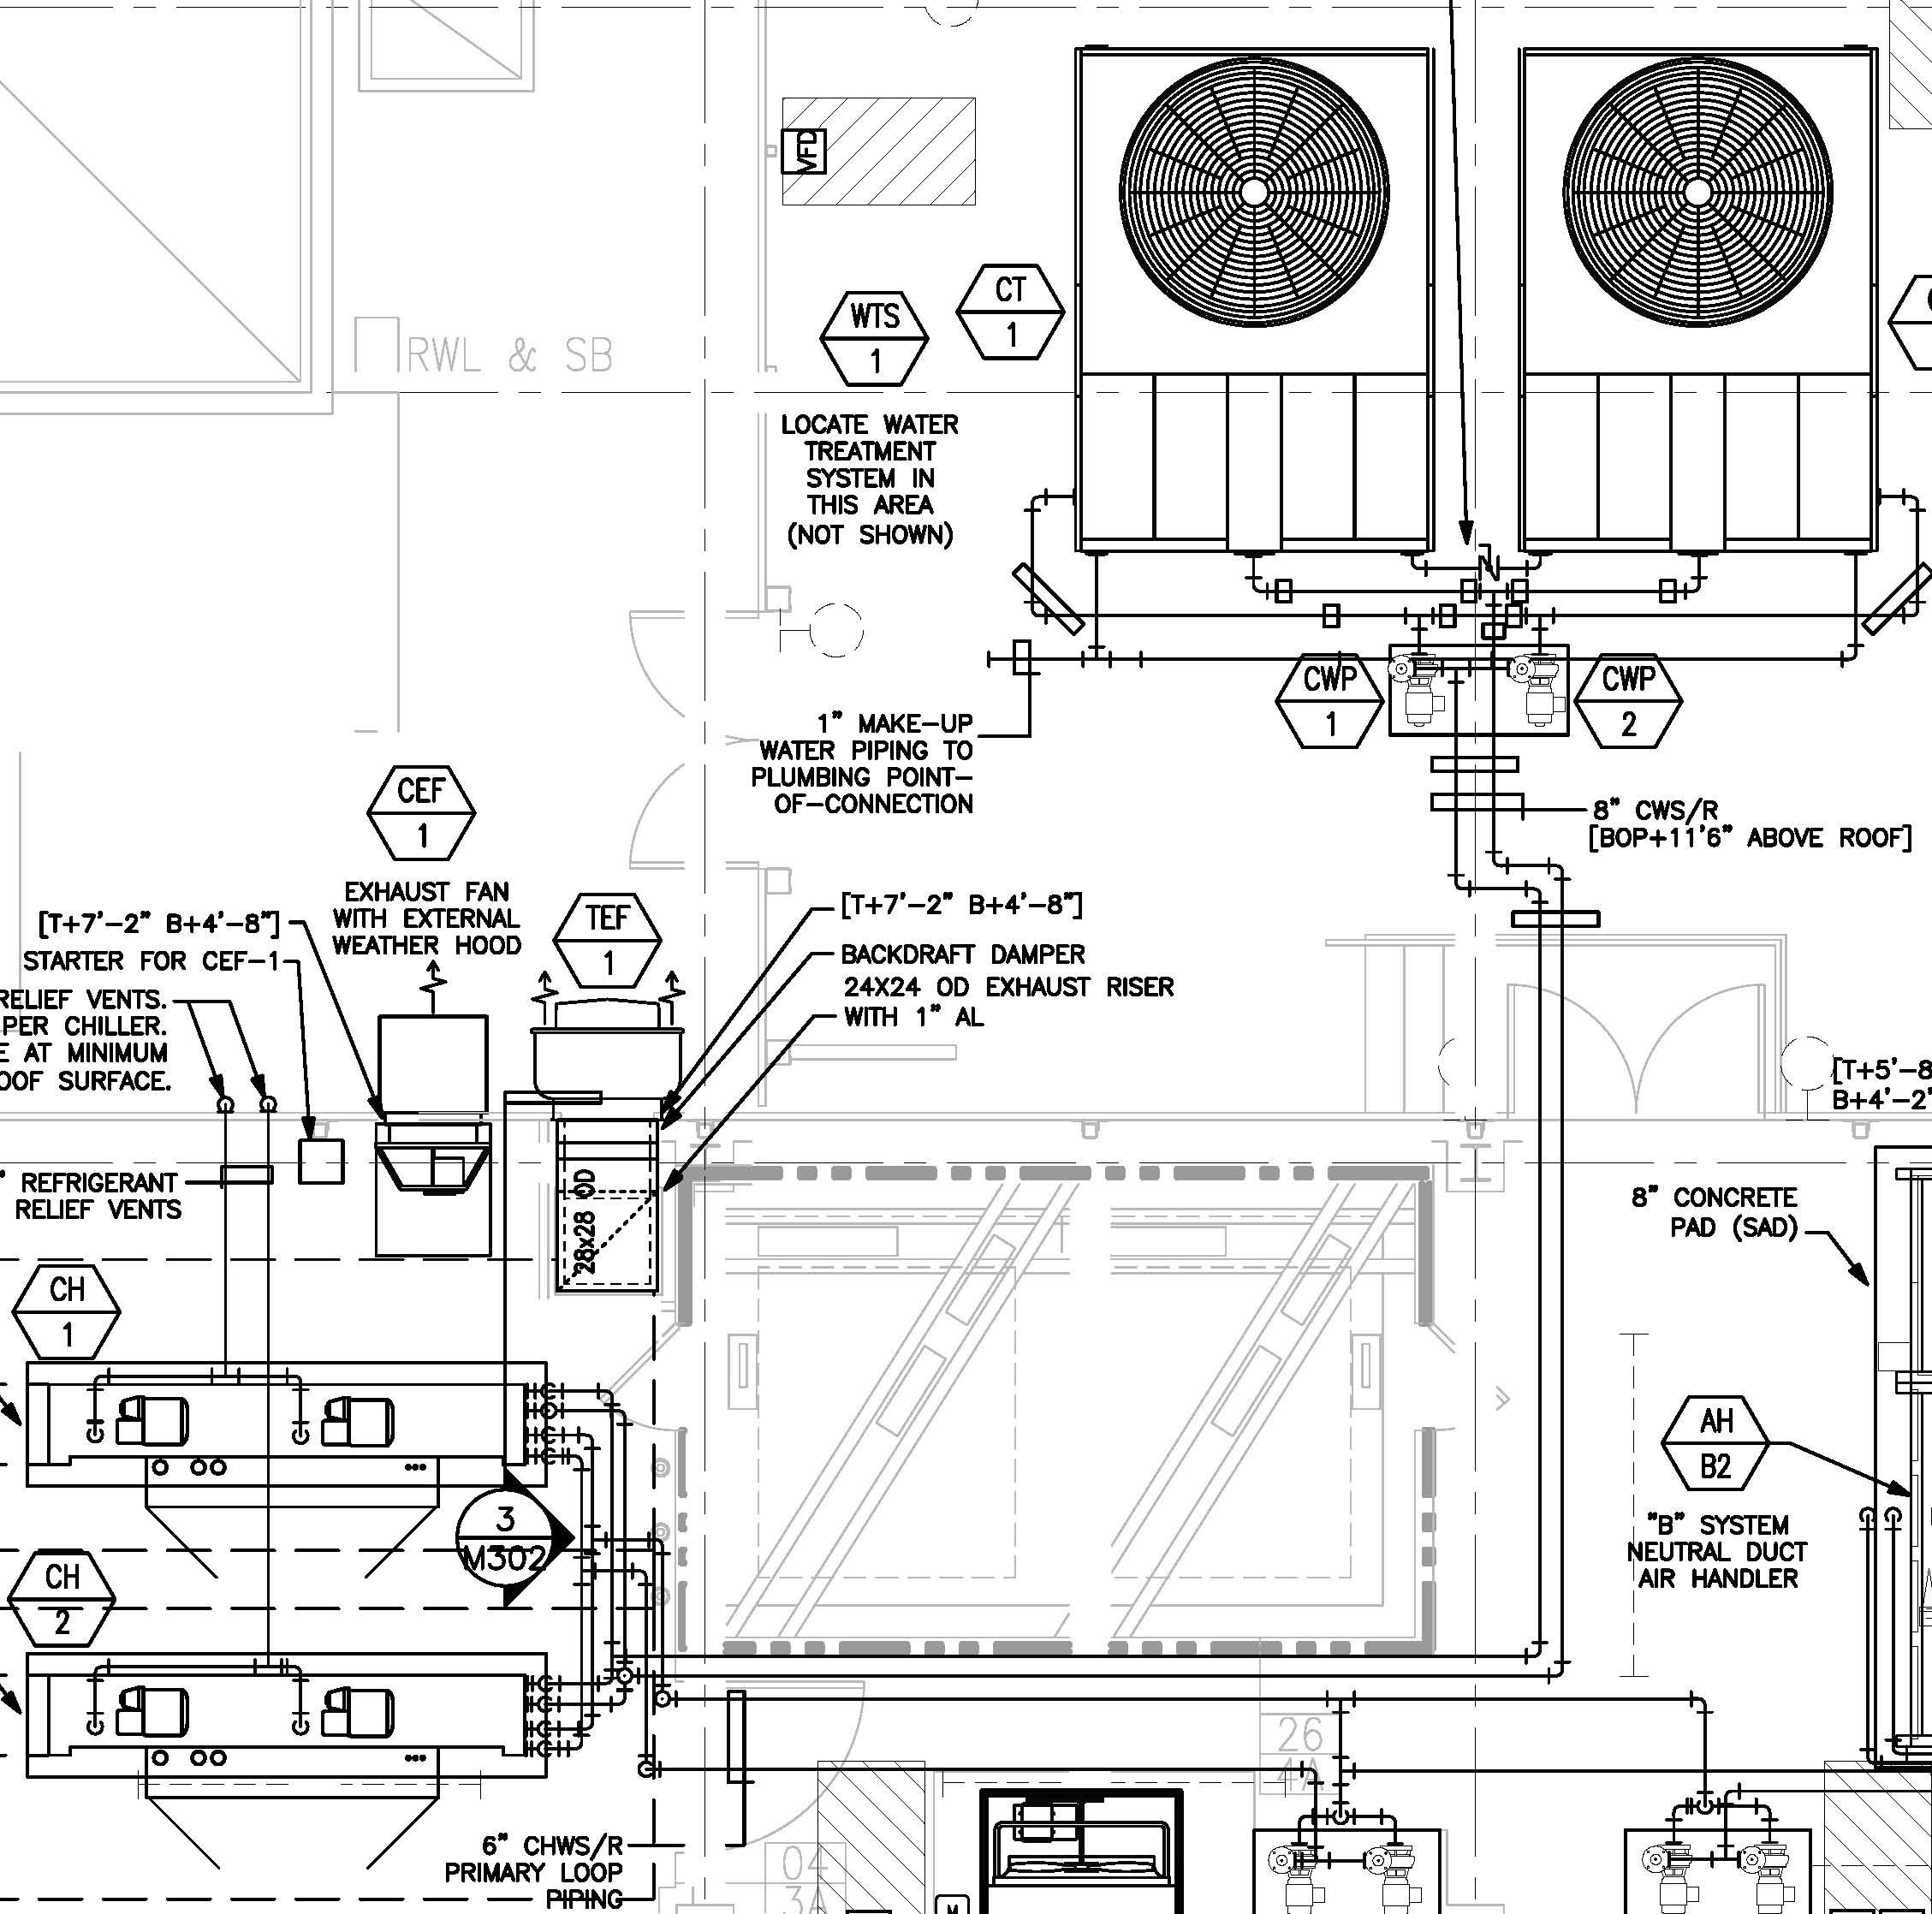 ac unit wiring diagram Collection-Wiring Diagram for York Air Conditioner Best Package Air Conditioning Unit Wiring Diagram New Unique York 7-h